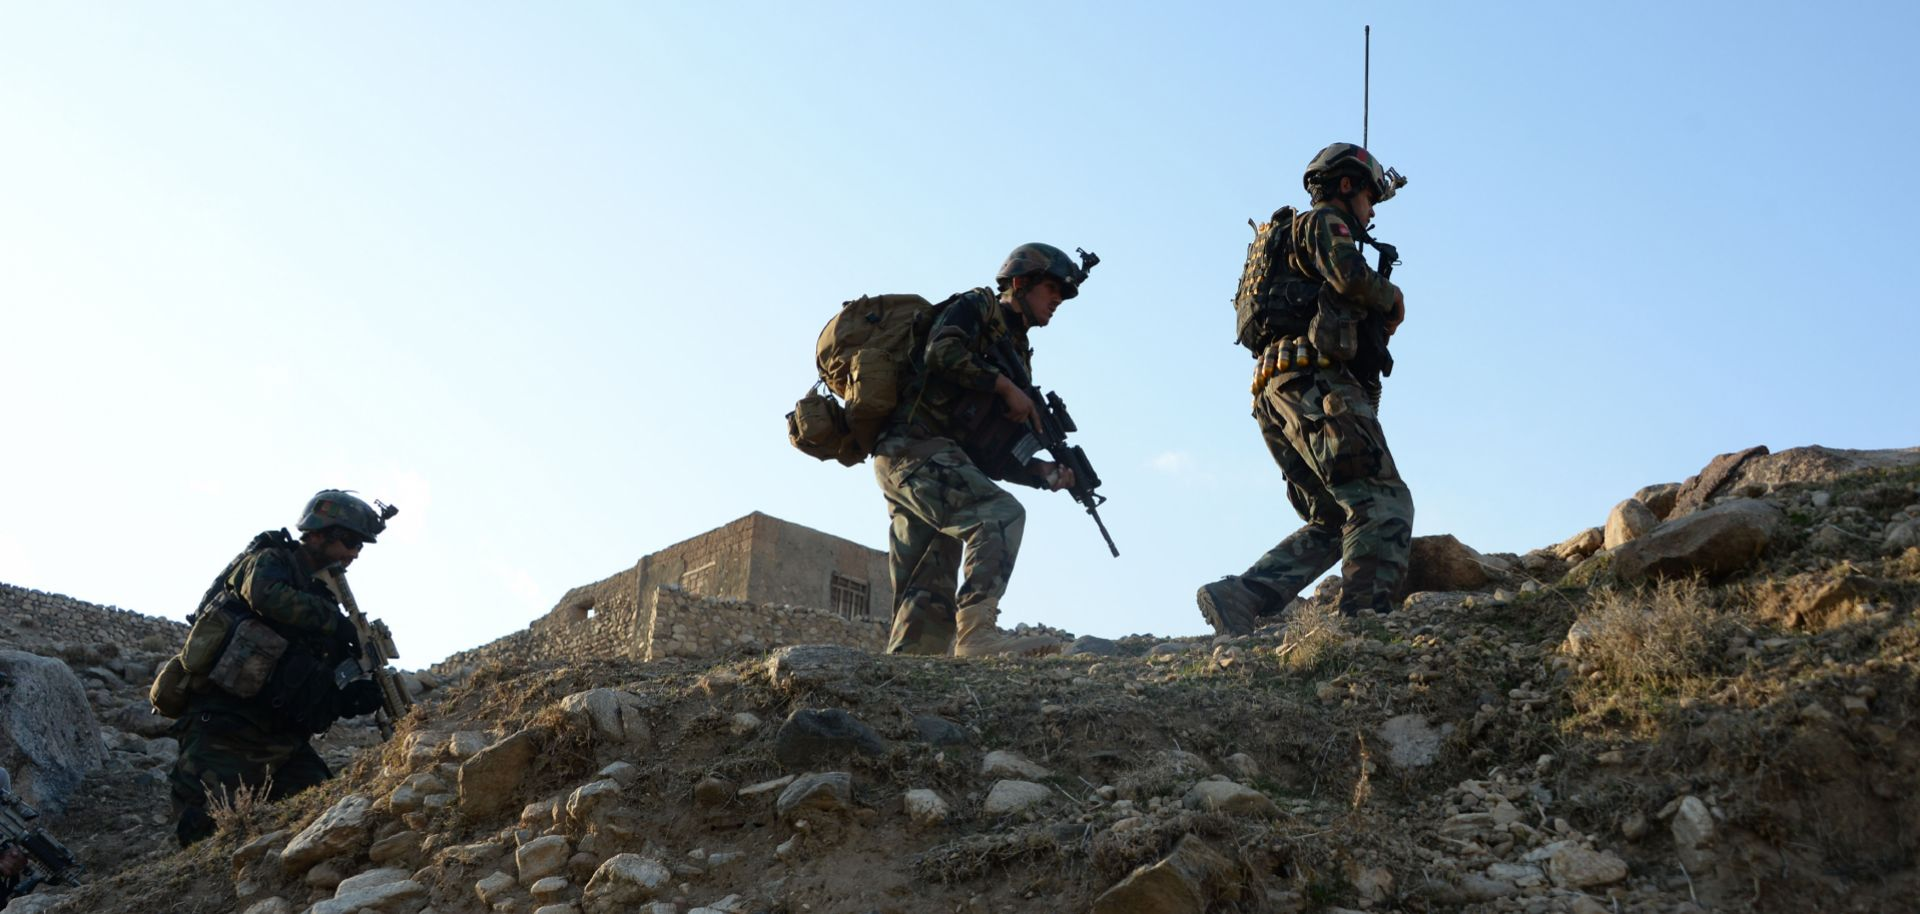 Afghan commandos patrol the Achin district of Nangarhar province during a U.S.-Afghan military operation against Islamic State militants on Jan. 3, 2018.